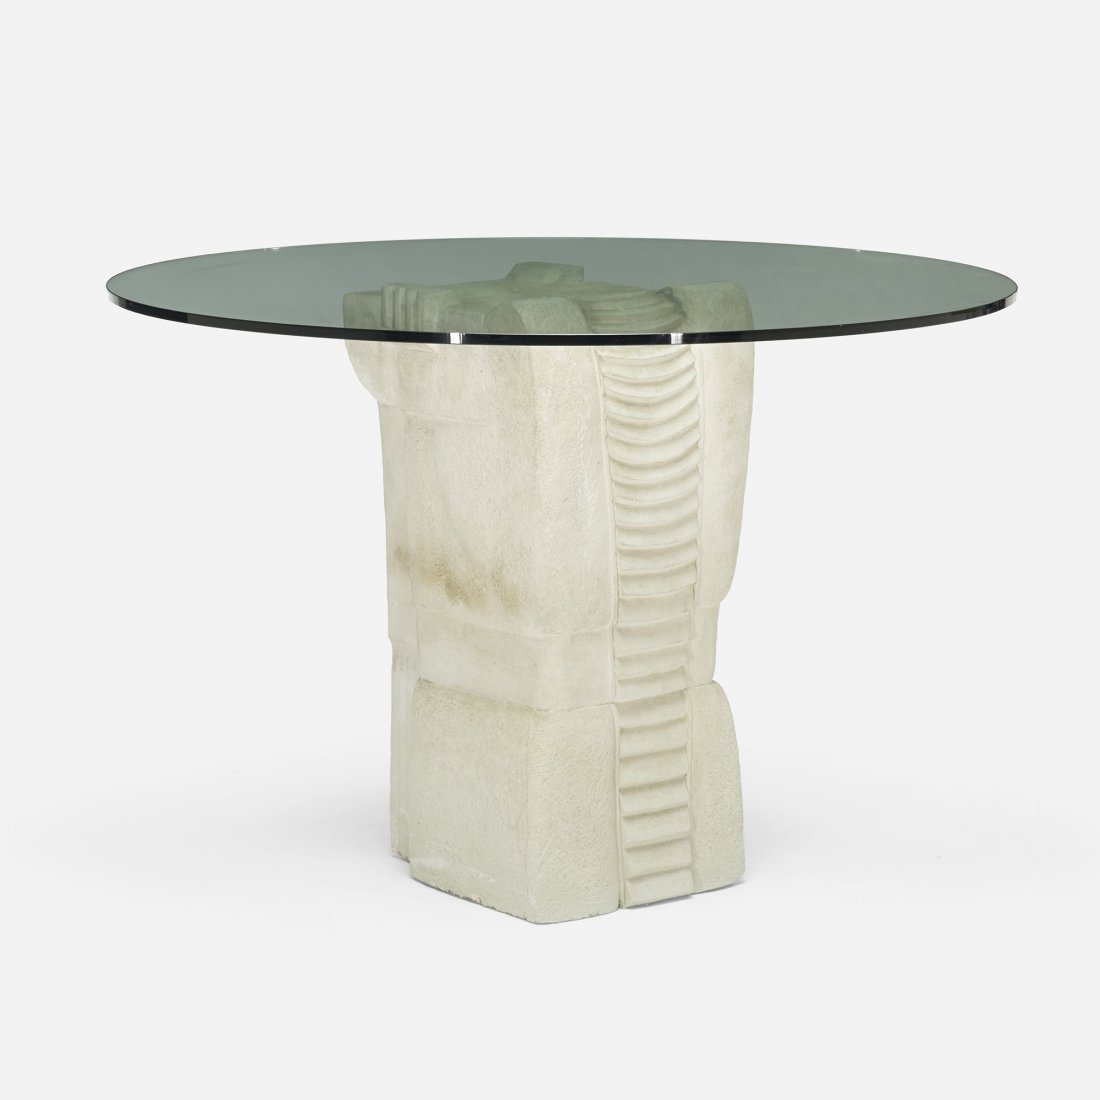 American sculptural table